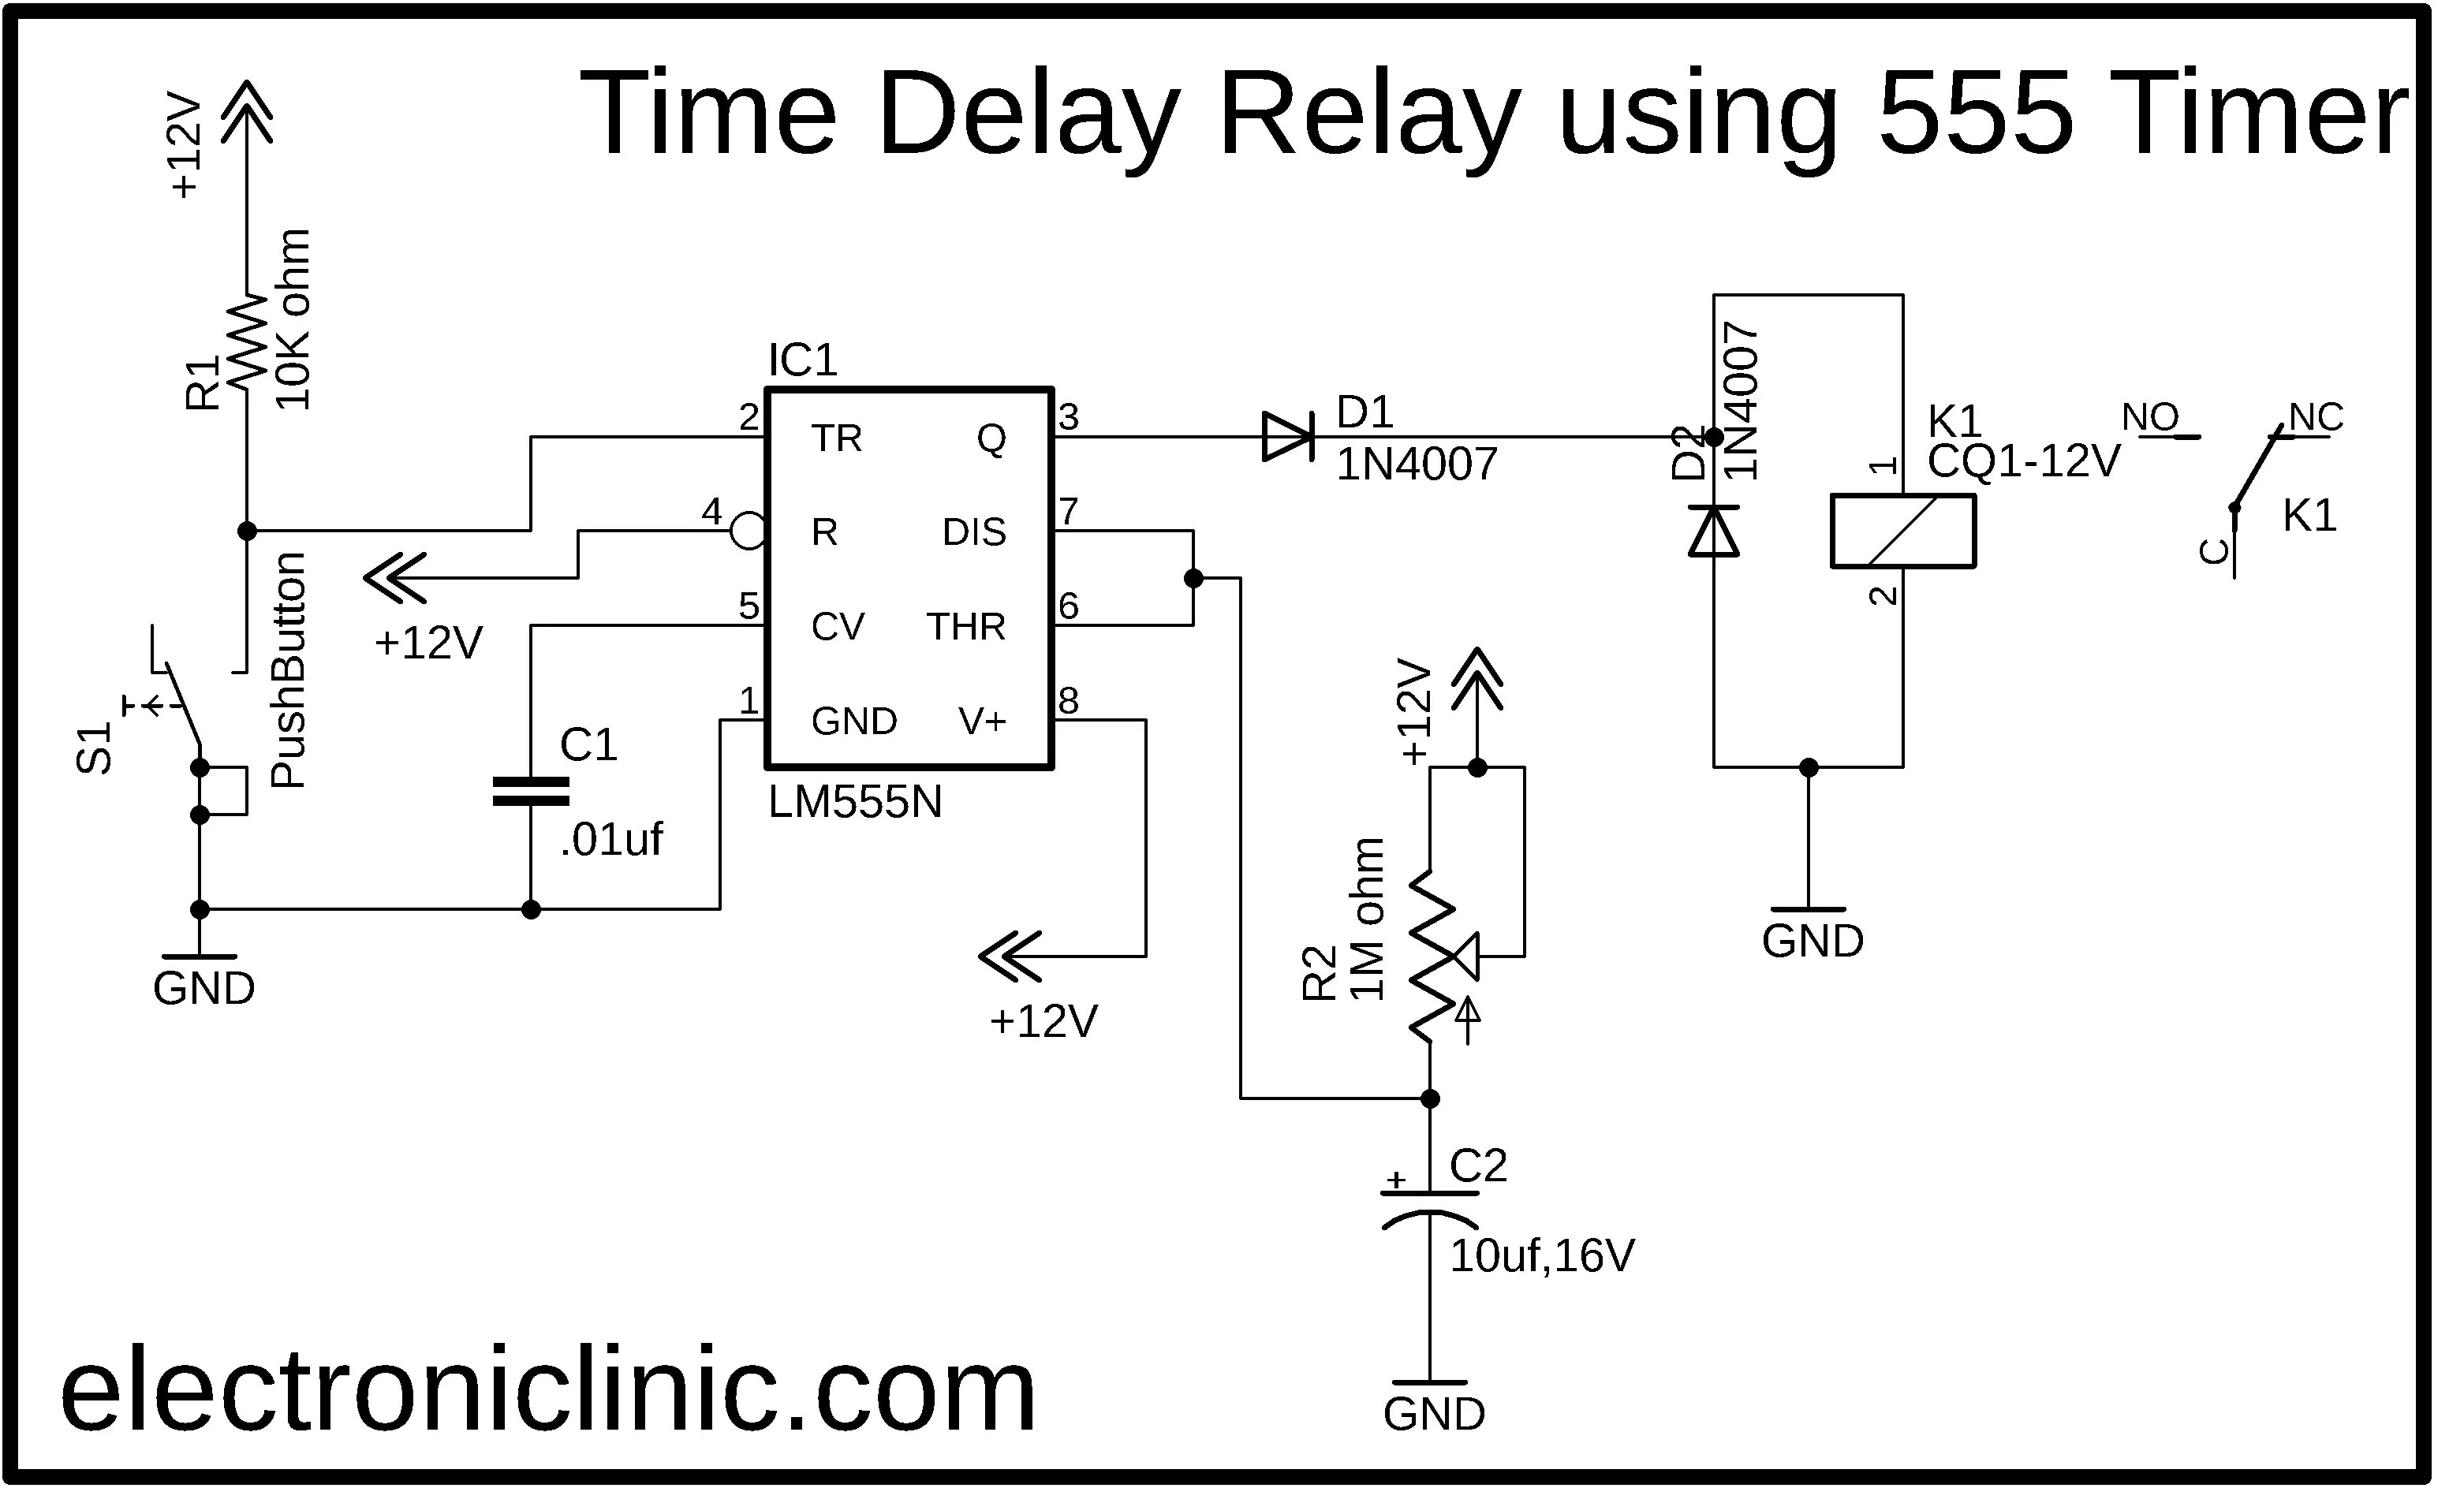 Time Delay Relay Using 555 Timer Proteus Simulation And Pcb Design